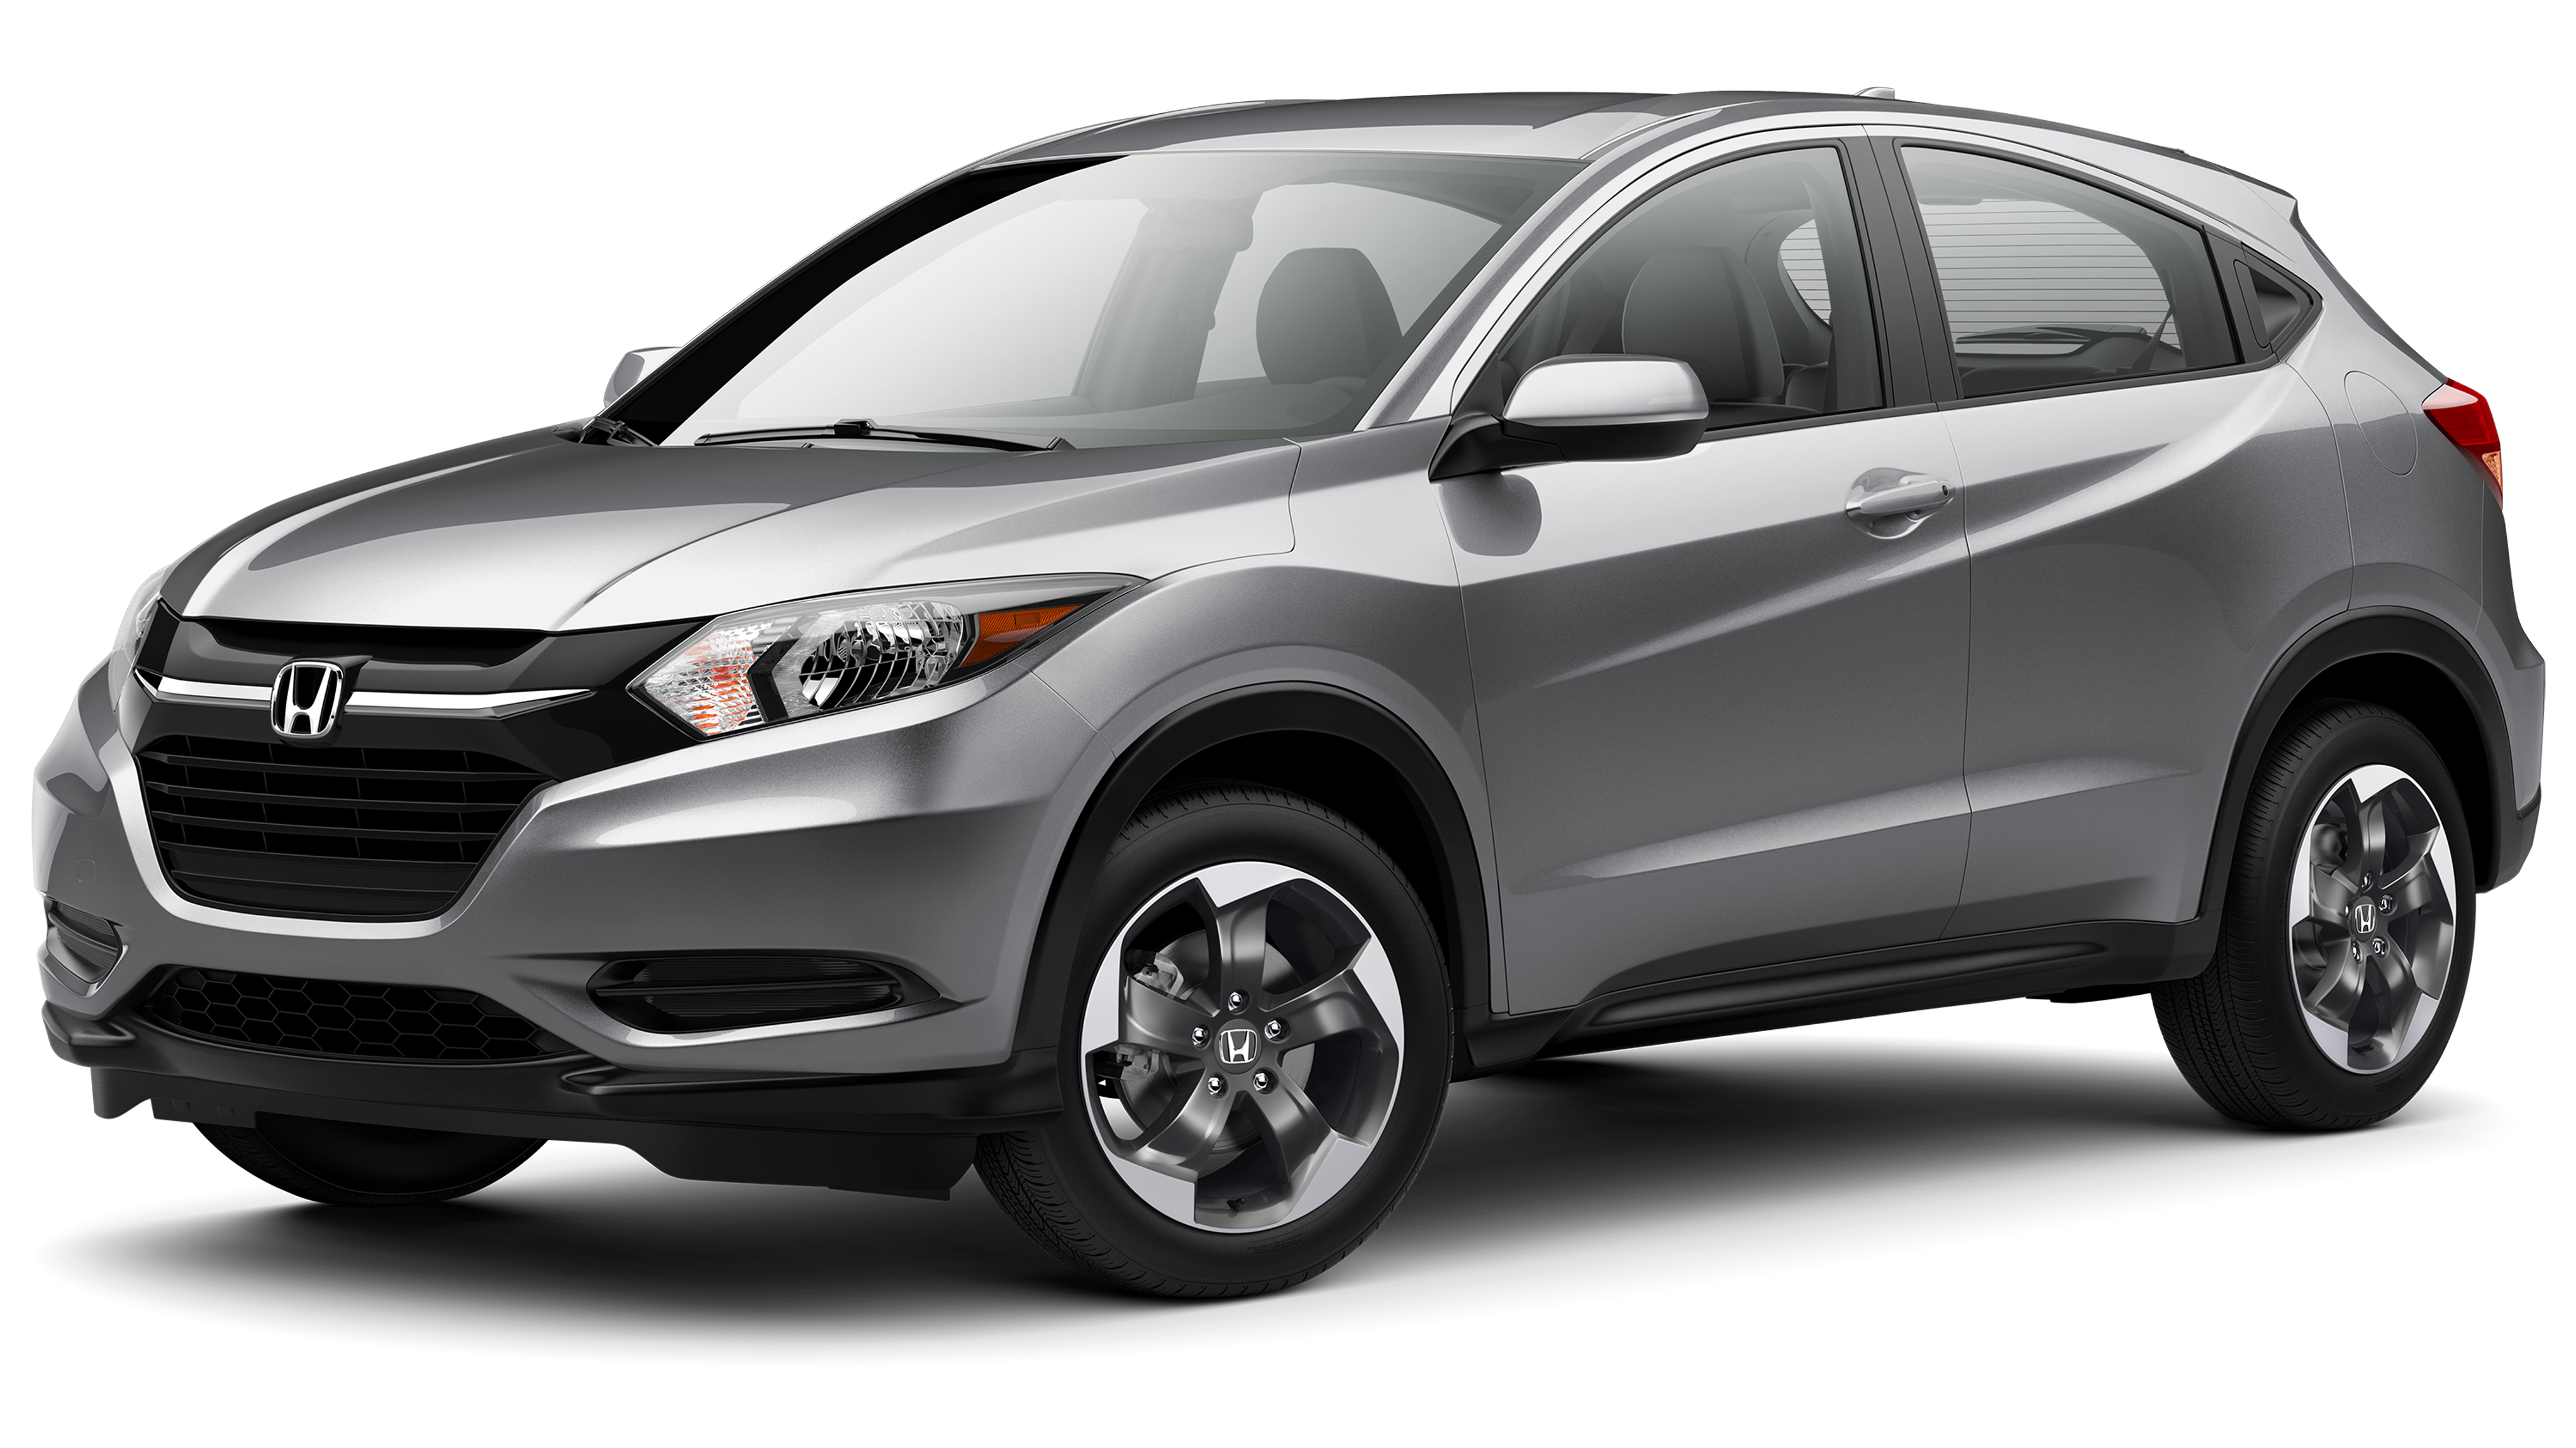 honda ing lease release crv cars a gallery vezel india incentives features in up videos